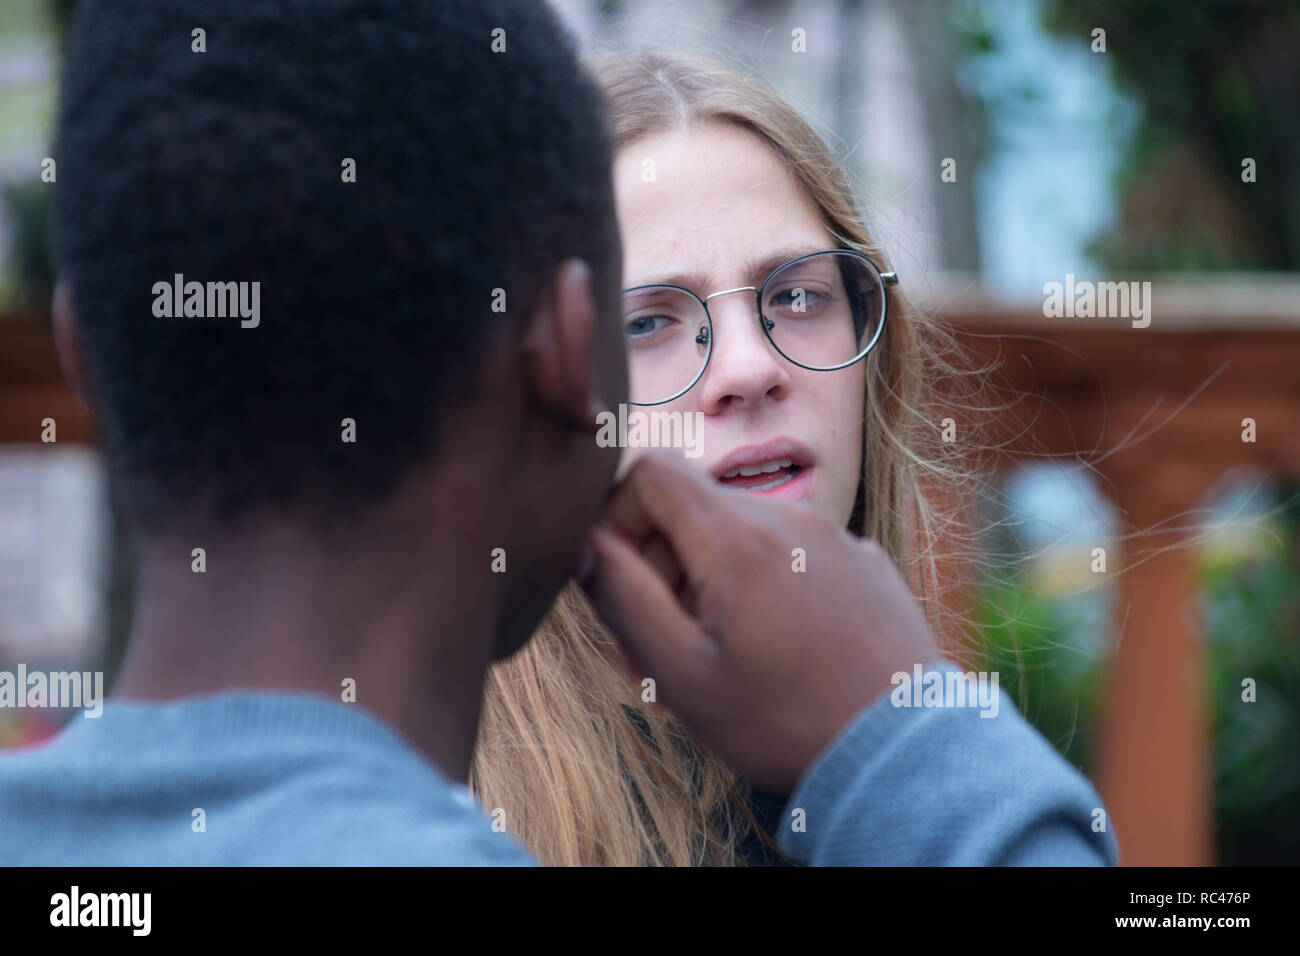 A photo of two students talking to each other in a park - Stock Image